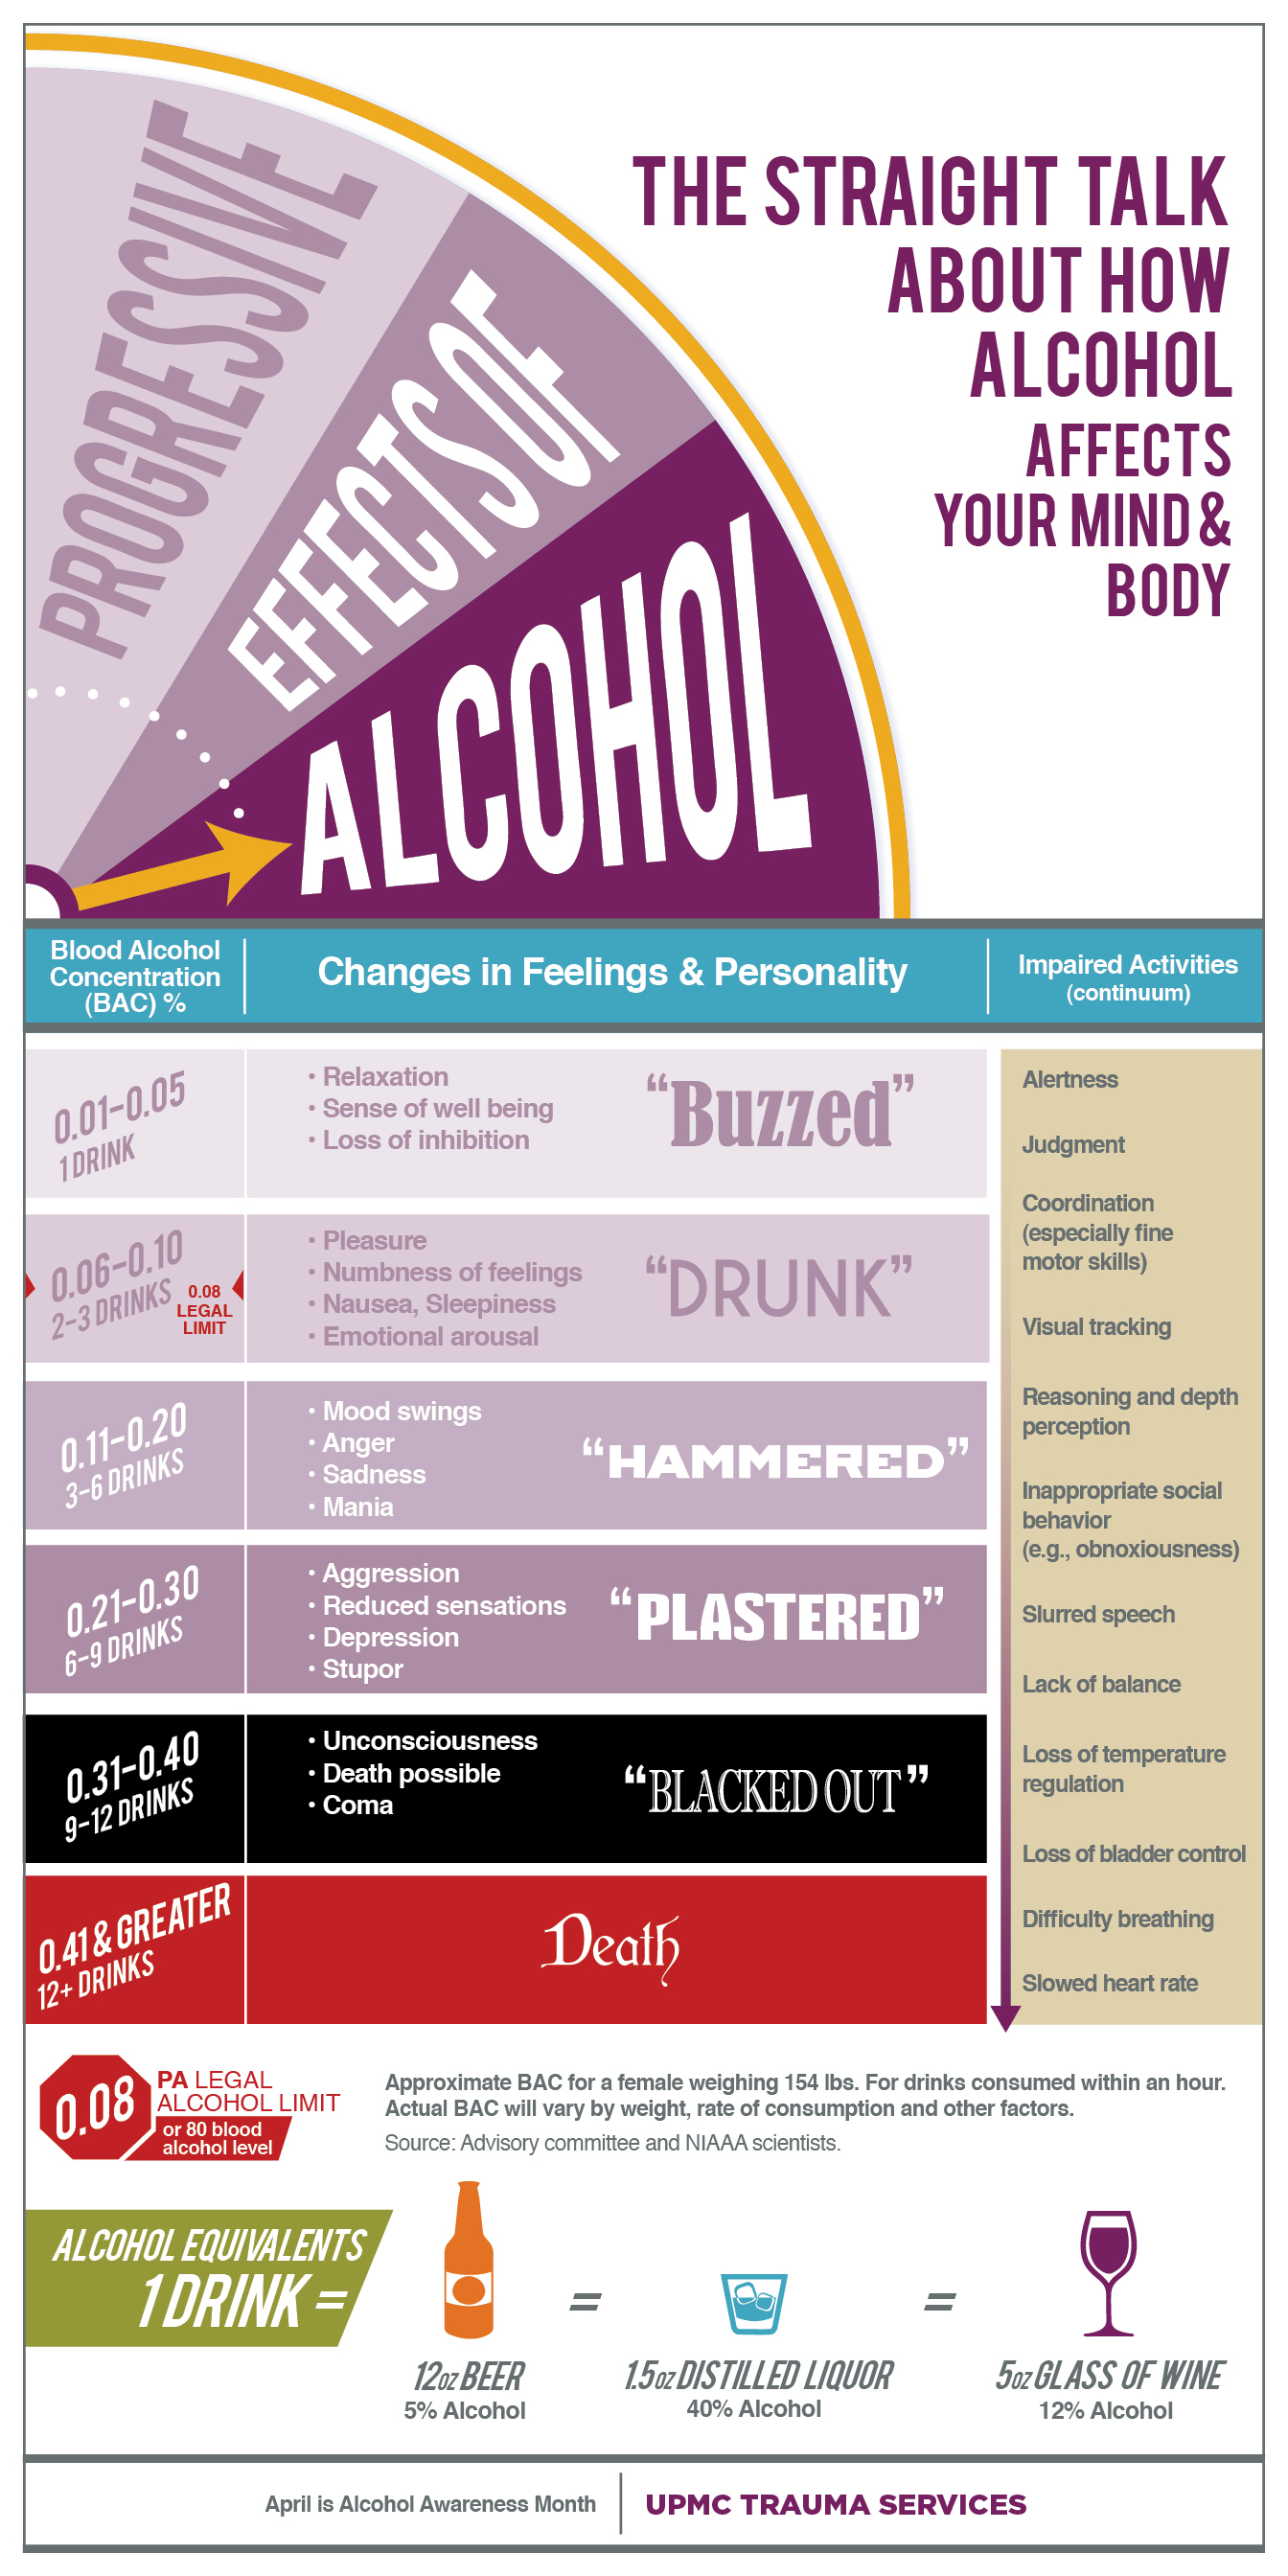 Effects of Alcohol on Your Mind and Body Infographic